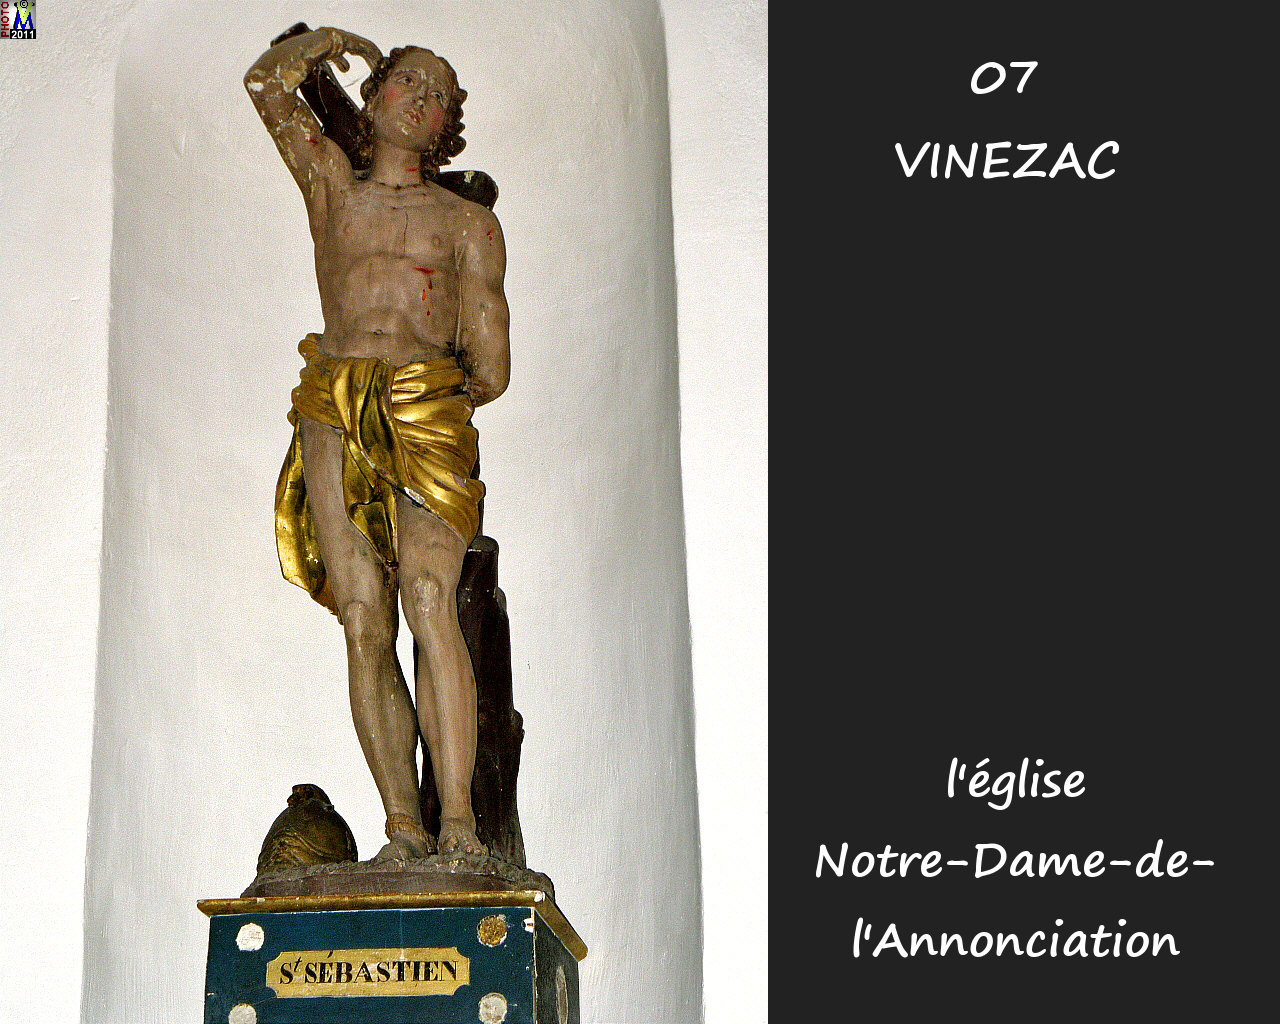 07VINEZAC_eglise_240.jpg